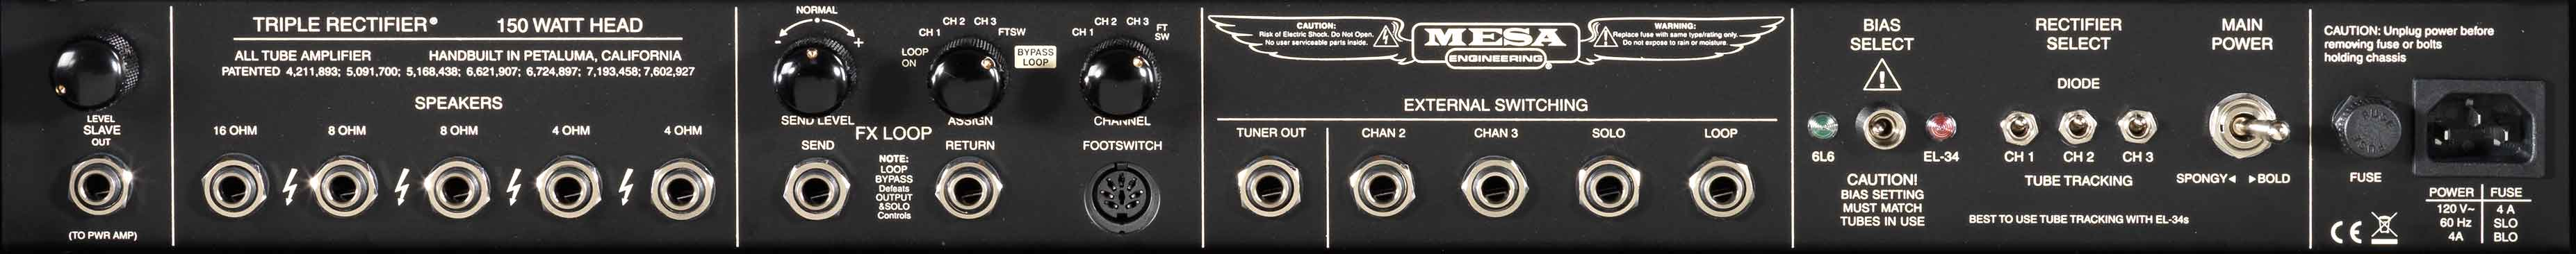 Triple Rectifier Rear Panel